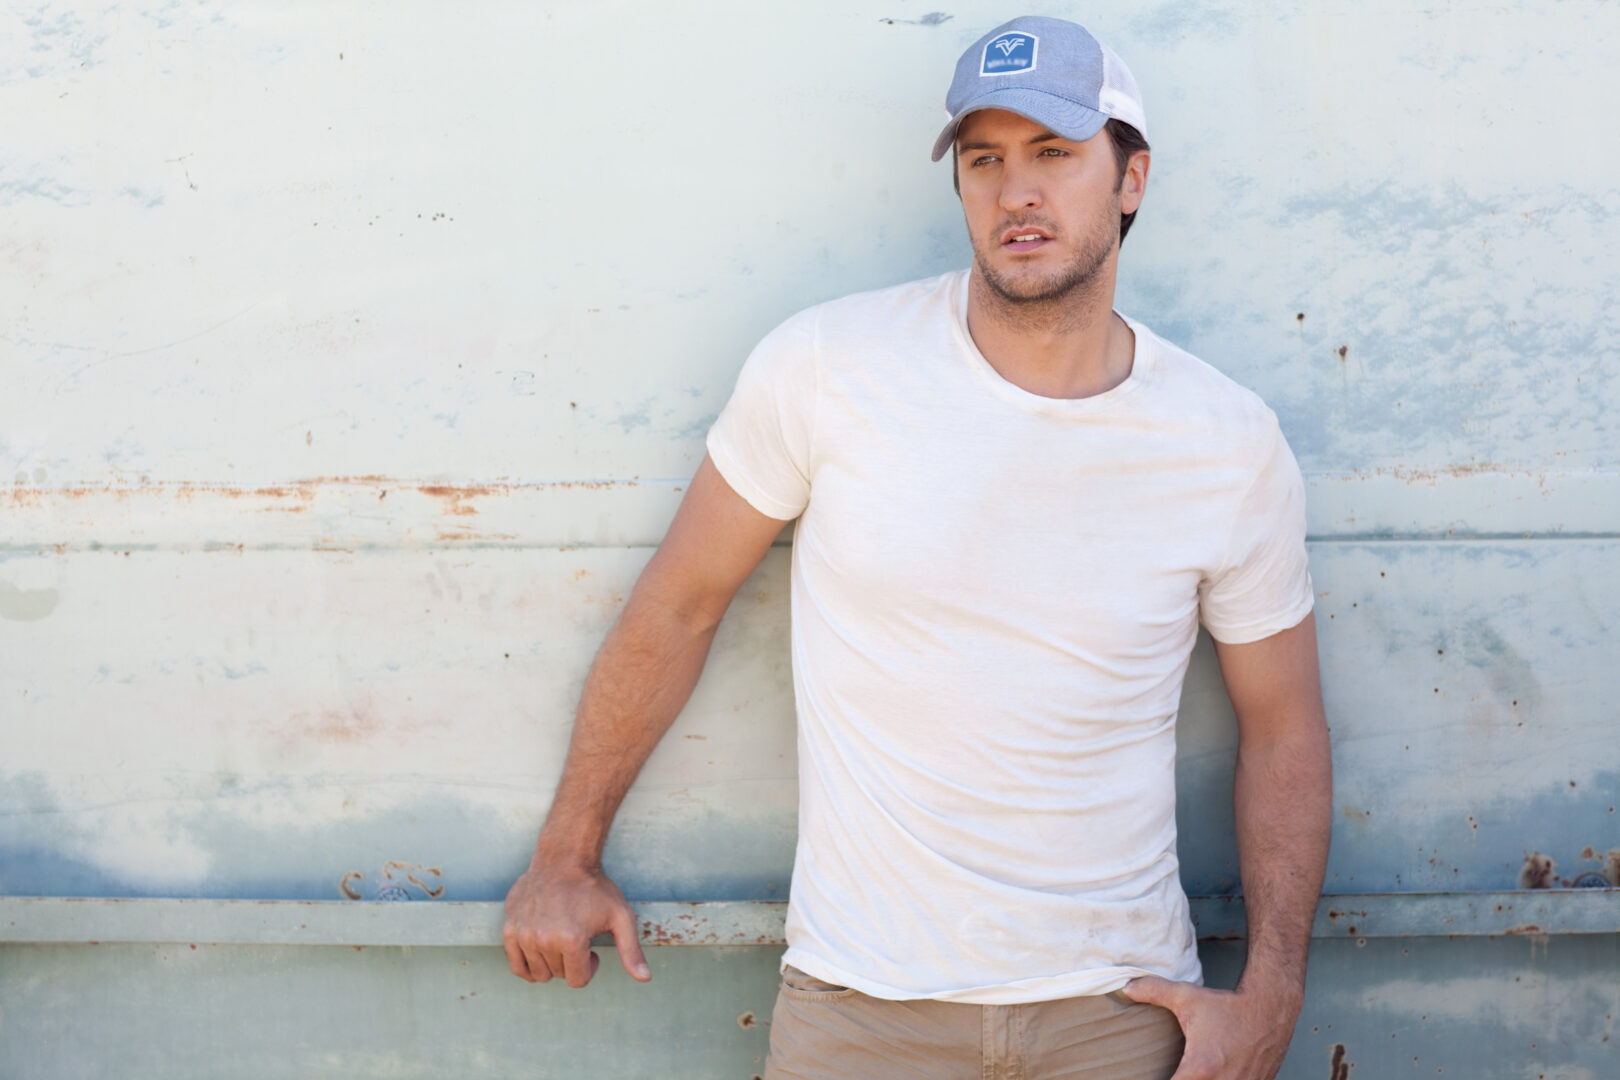 Luke Bryan Sells Out 1st Leg of Tour / Announces 2nd Leg